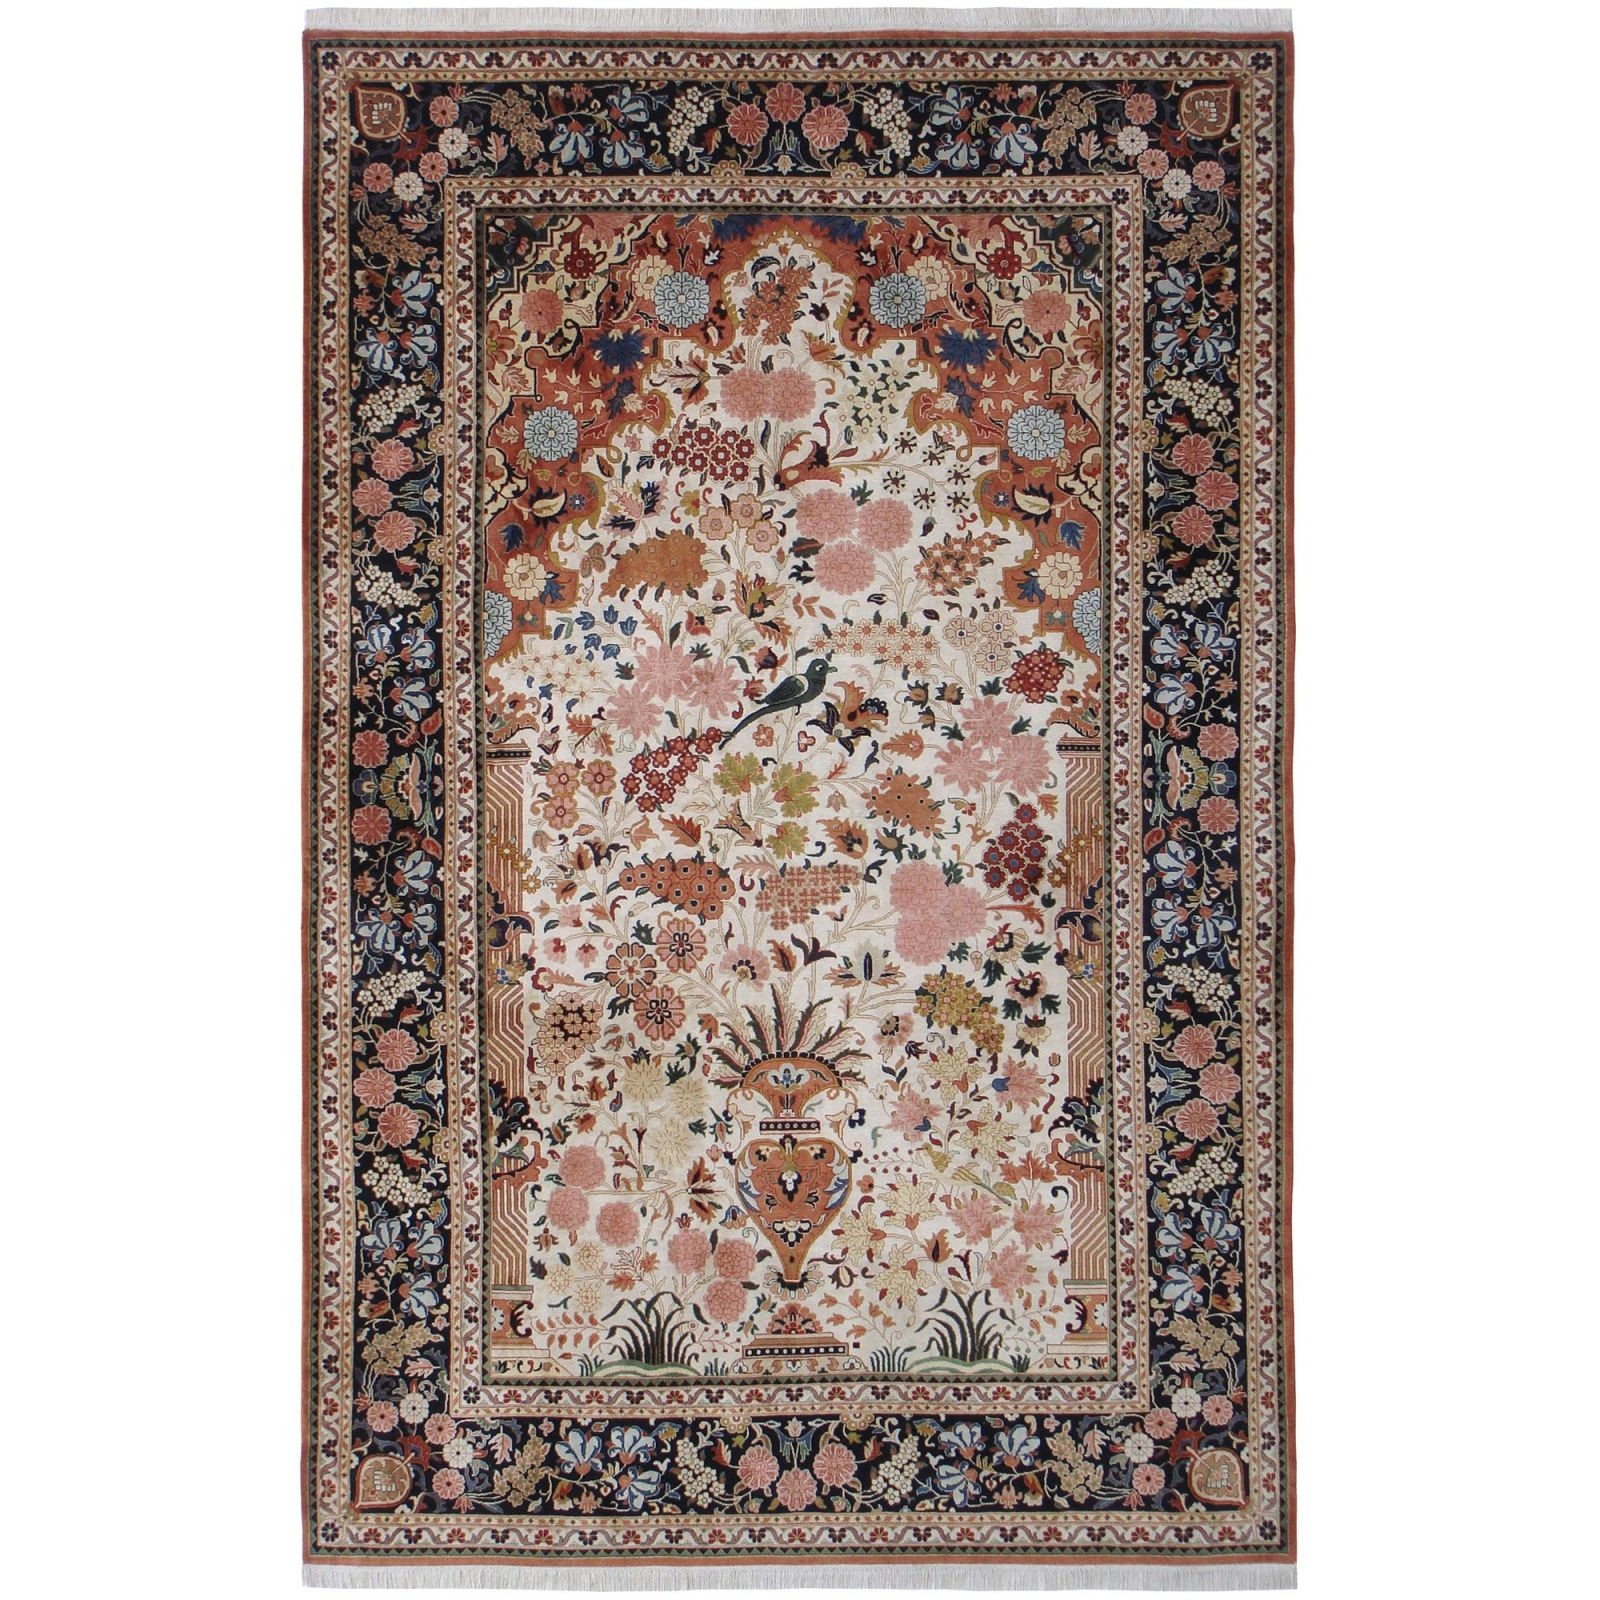 Kashan prayer design silk pile carpet